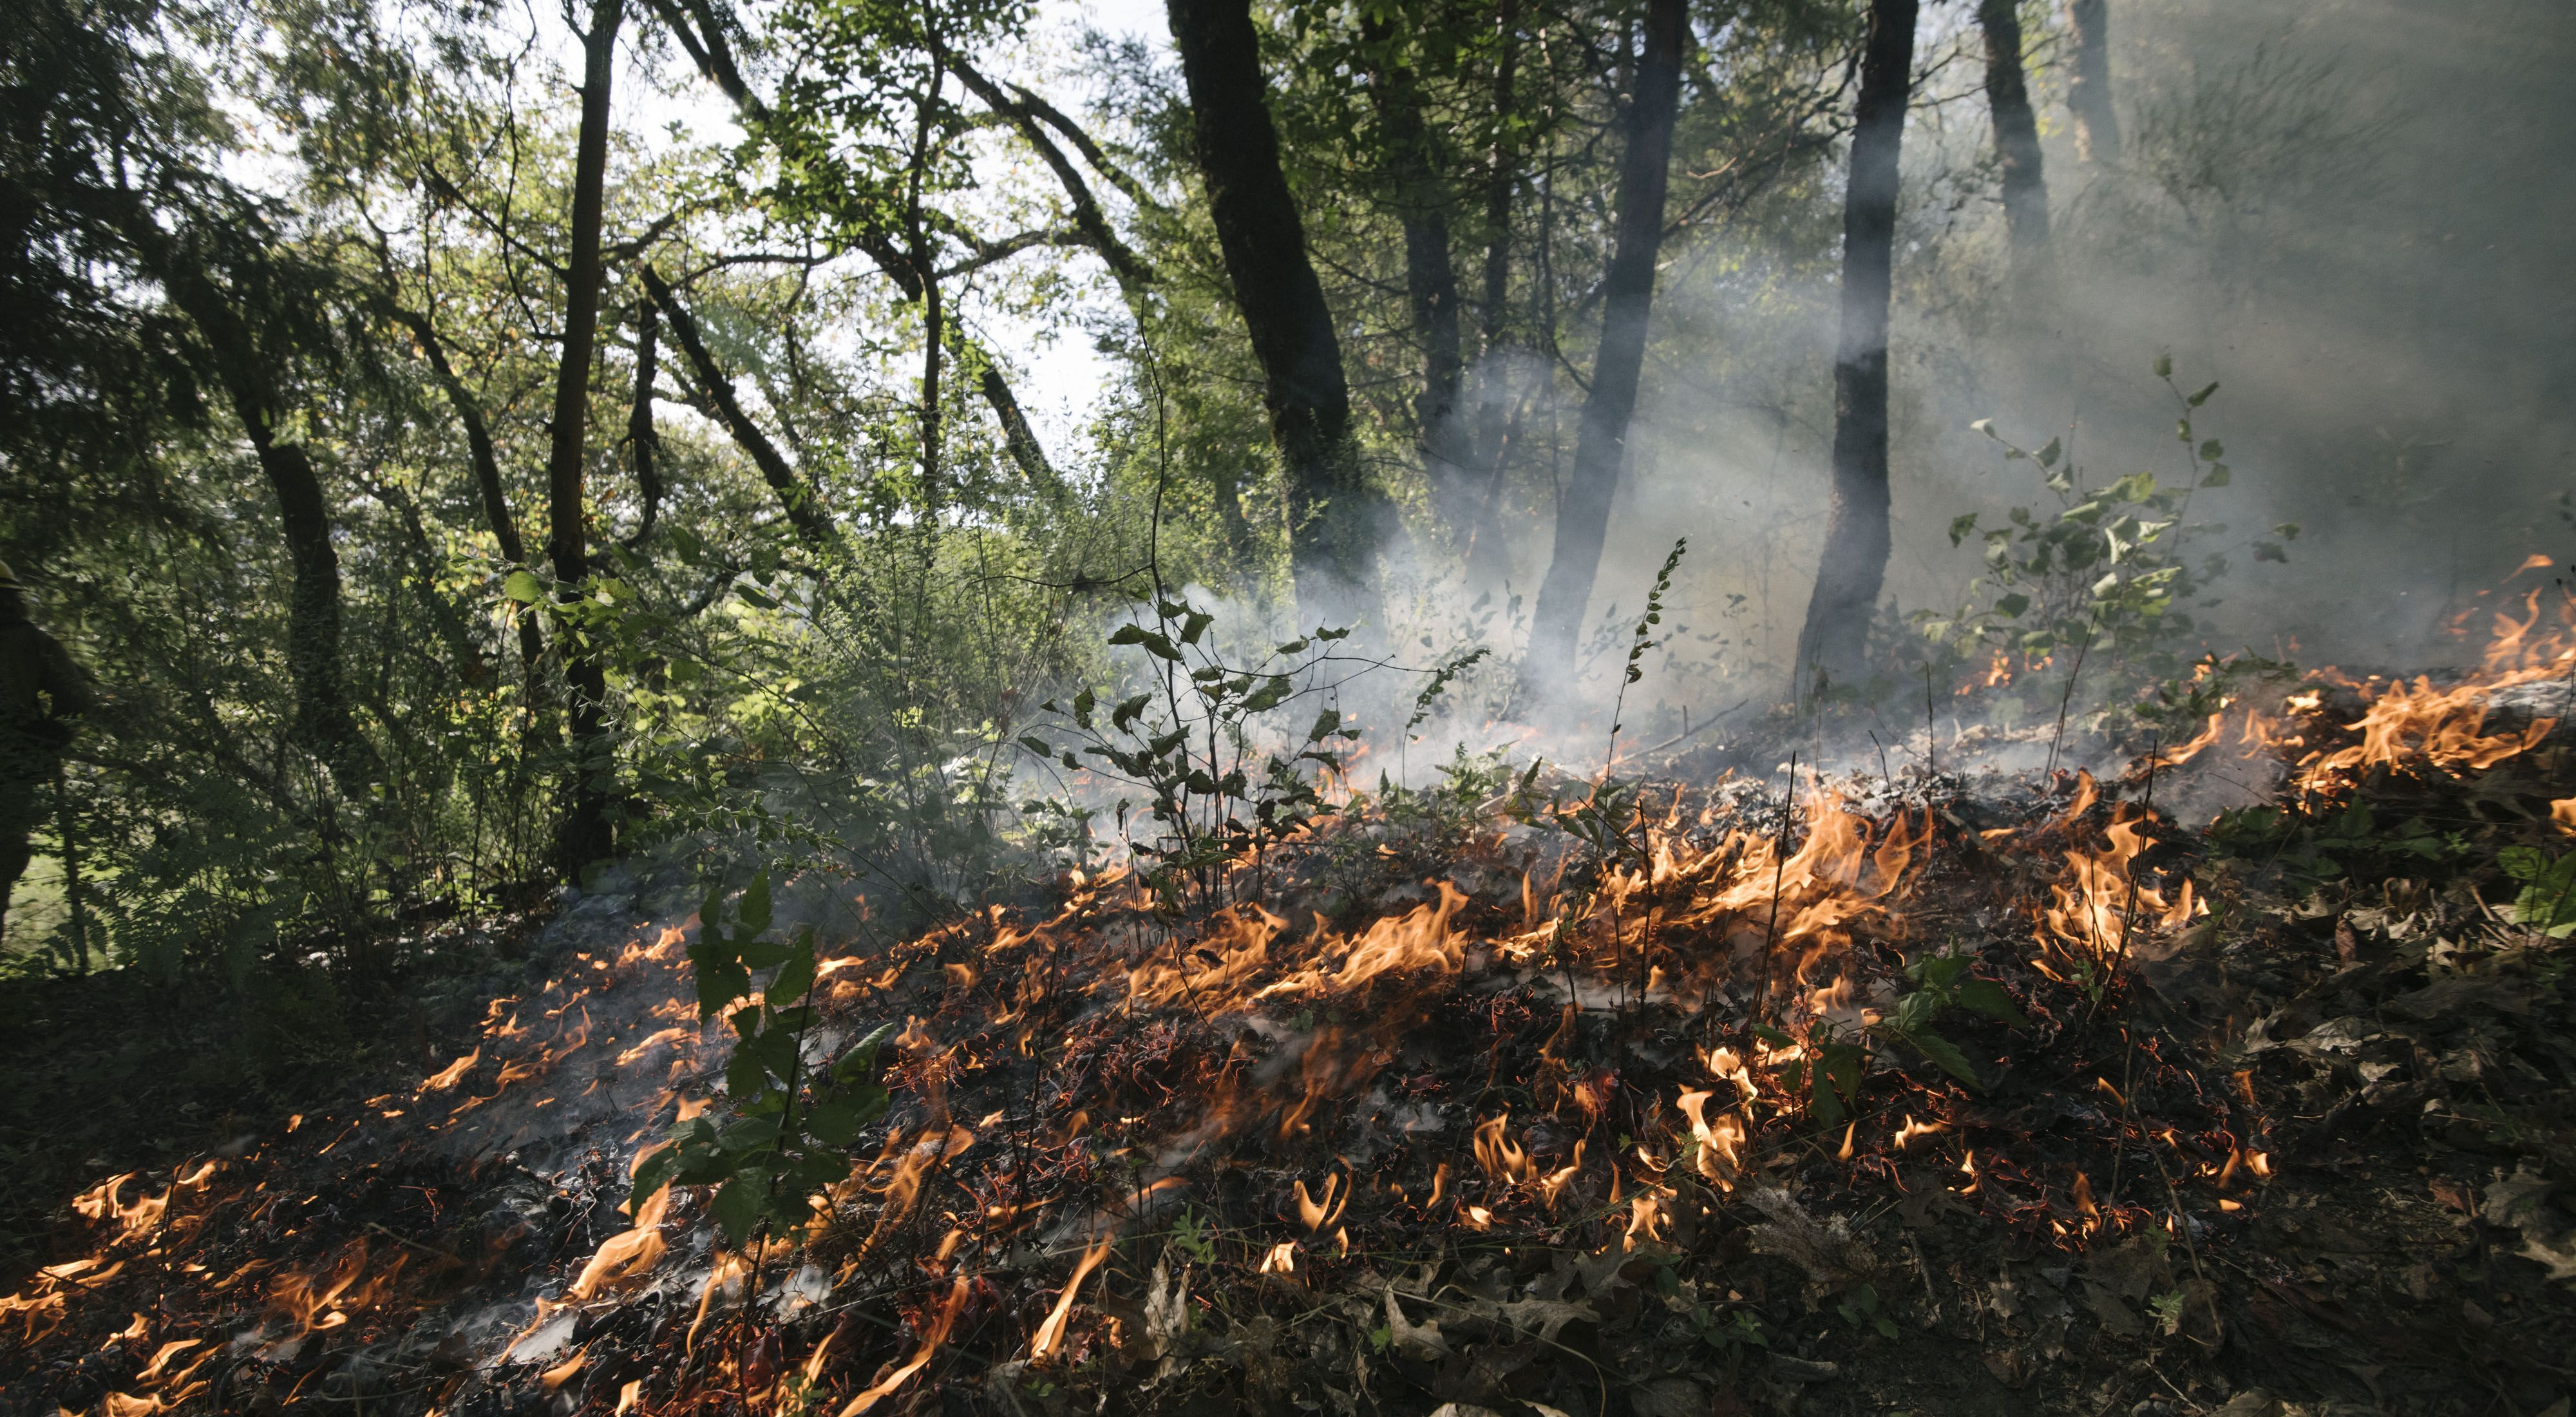 A ring of flame is created around a young hazel plant, burning away competitors during an indigenous prescribed burn near Weitchpec, CA.